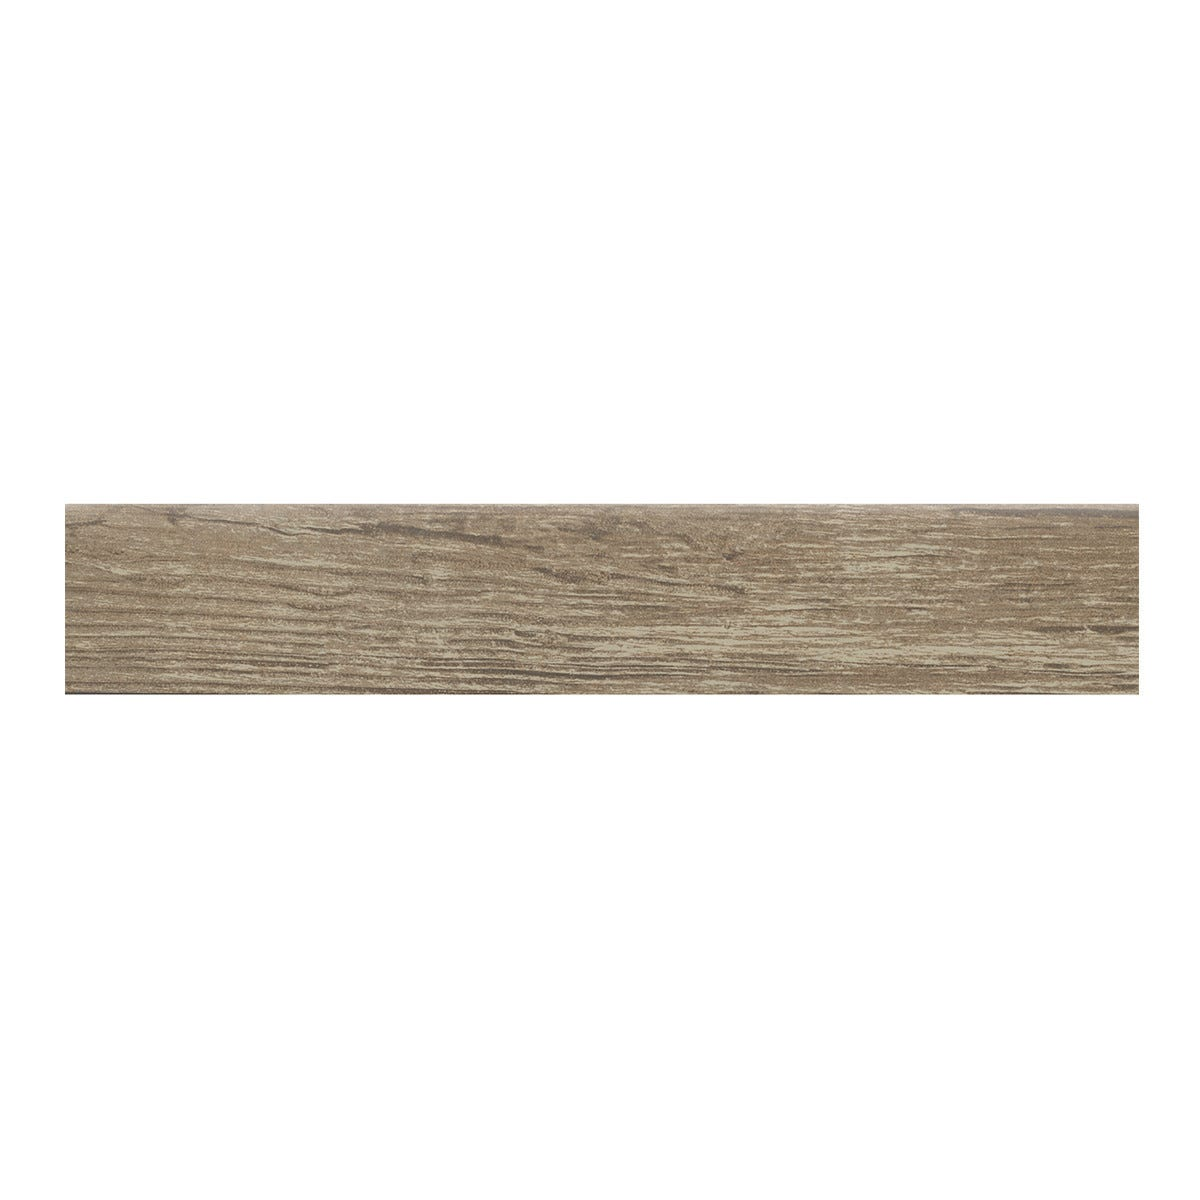 Battiscopa Staccato Dal Pavimento battiscopa legno bosco marrone 8x45x0,8 cm 8 pezzi gres porcellanato